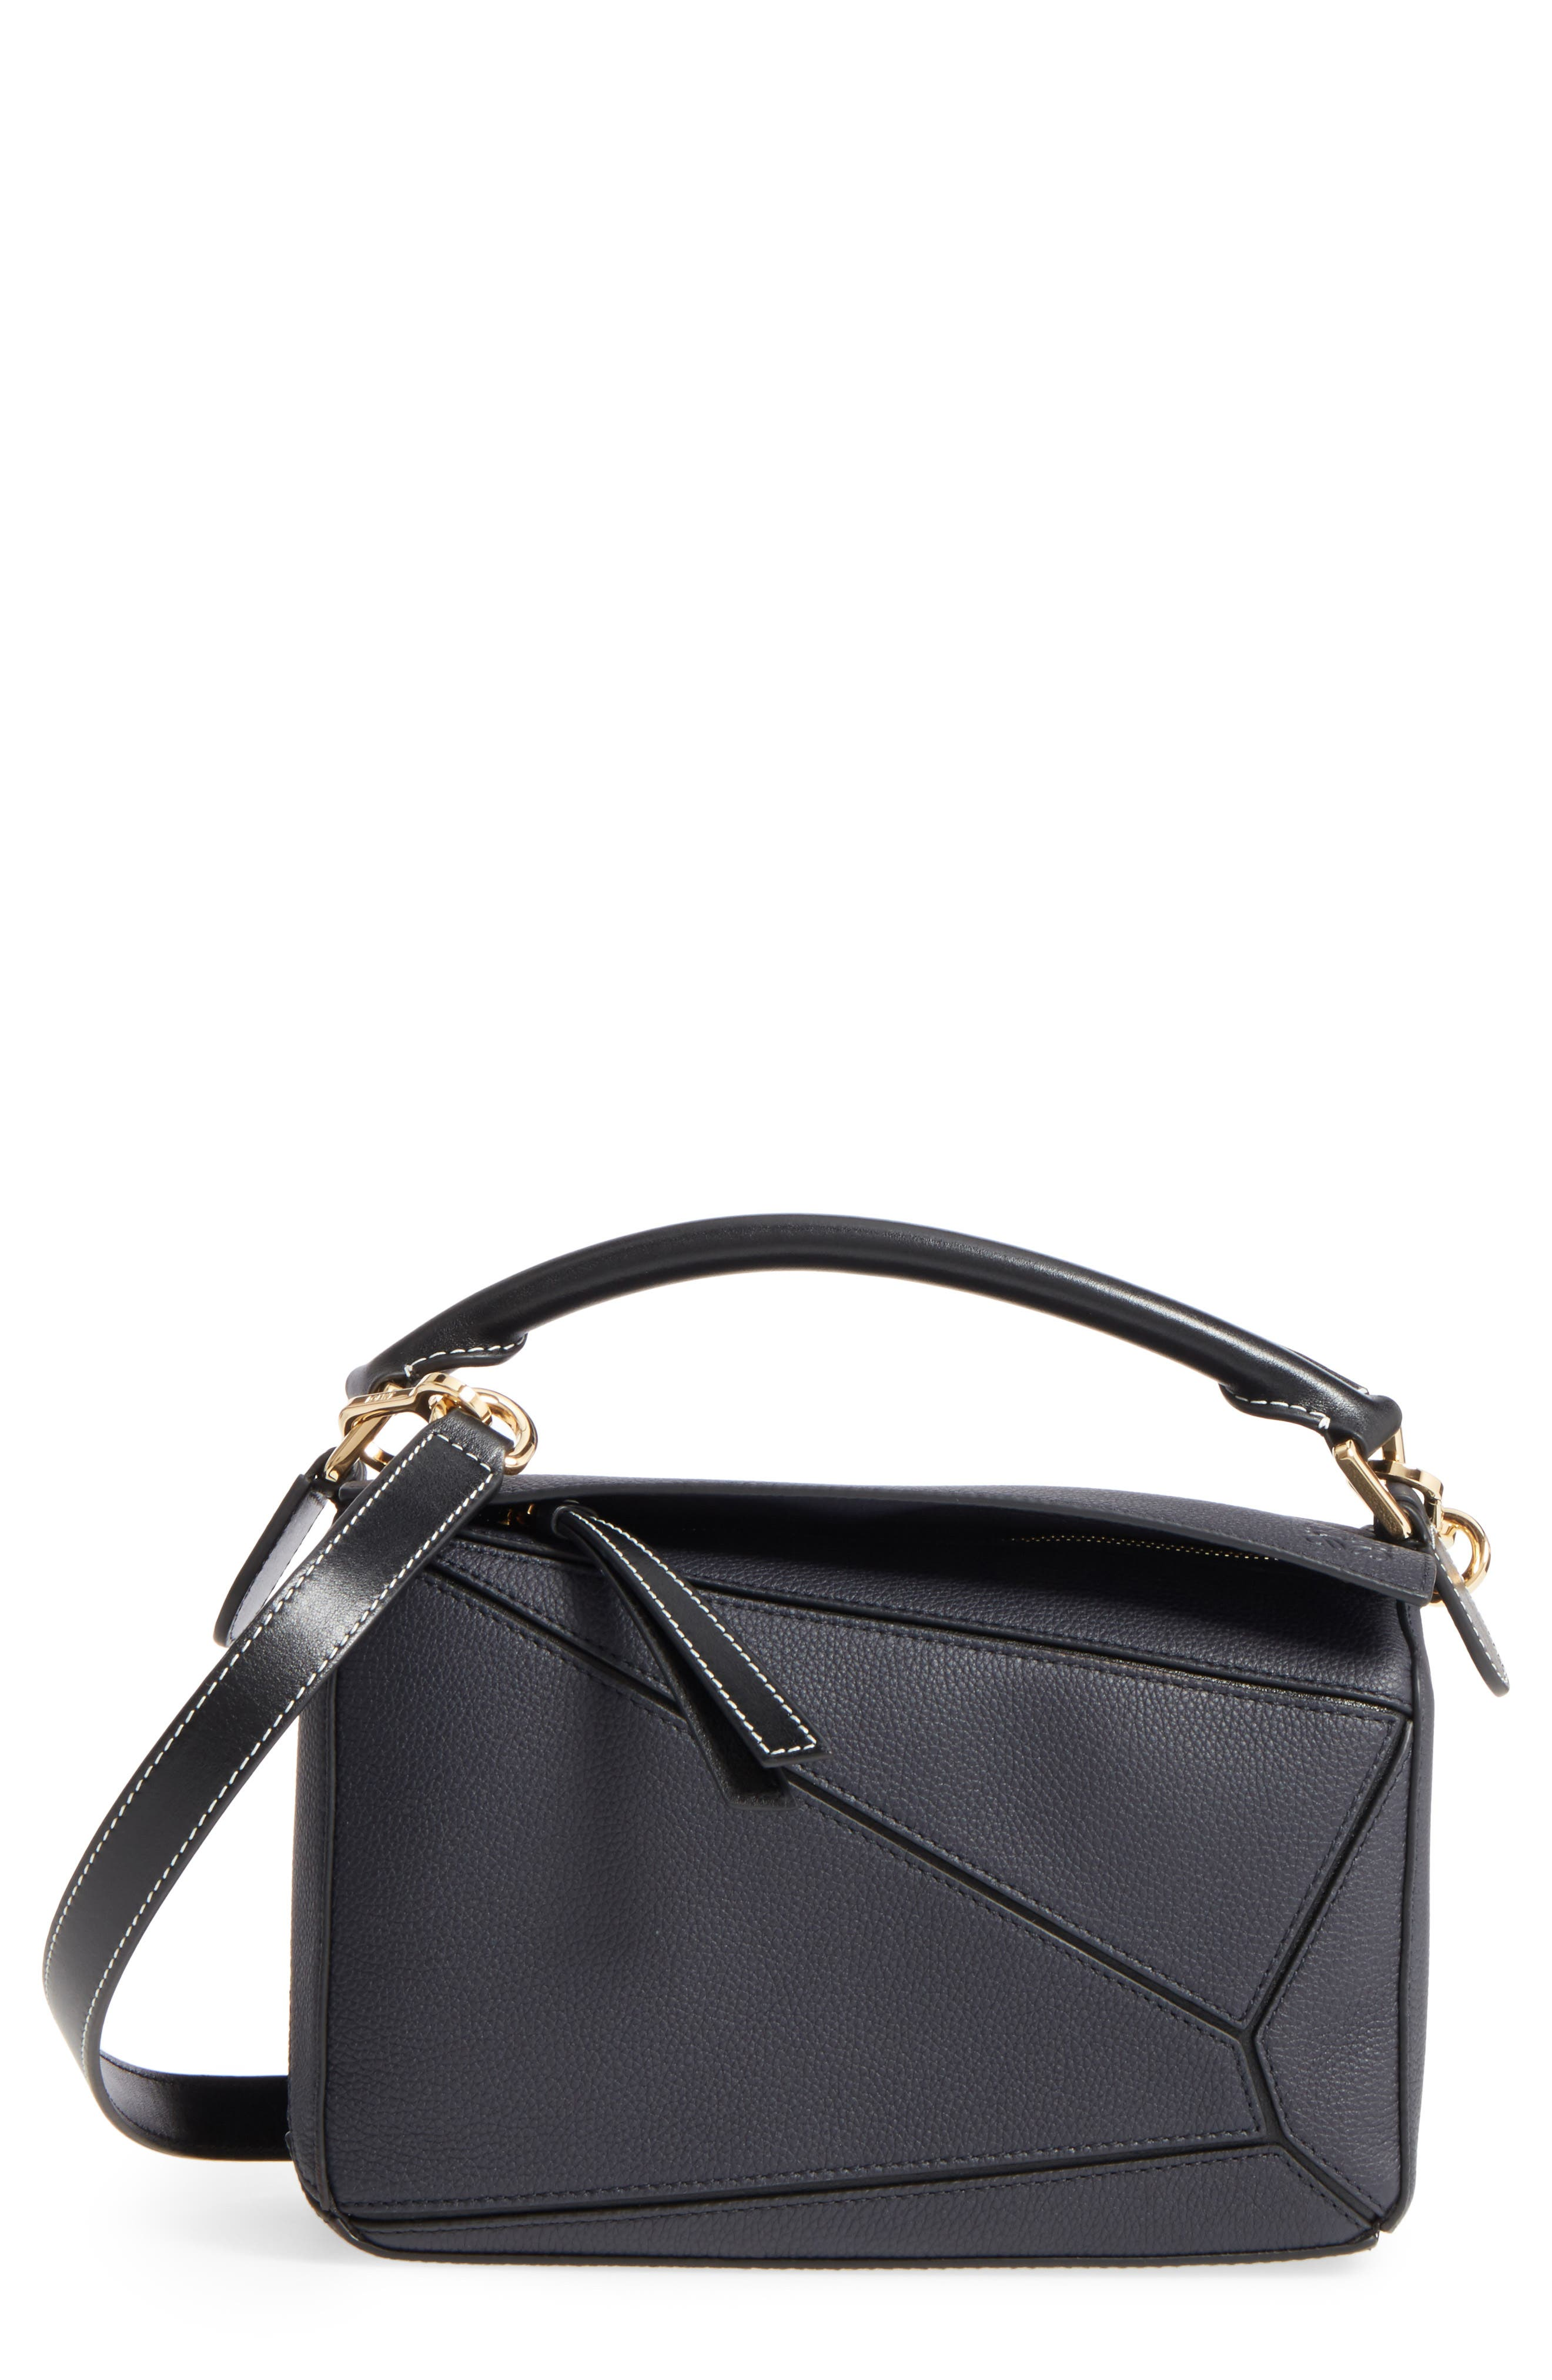 Alternate Image 1 Selected - Loewe Small Puzzle Leather Bag